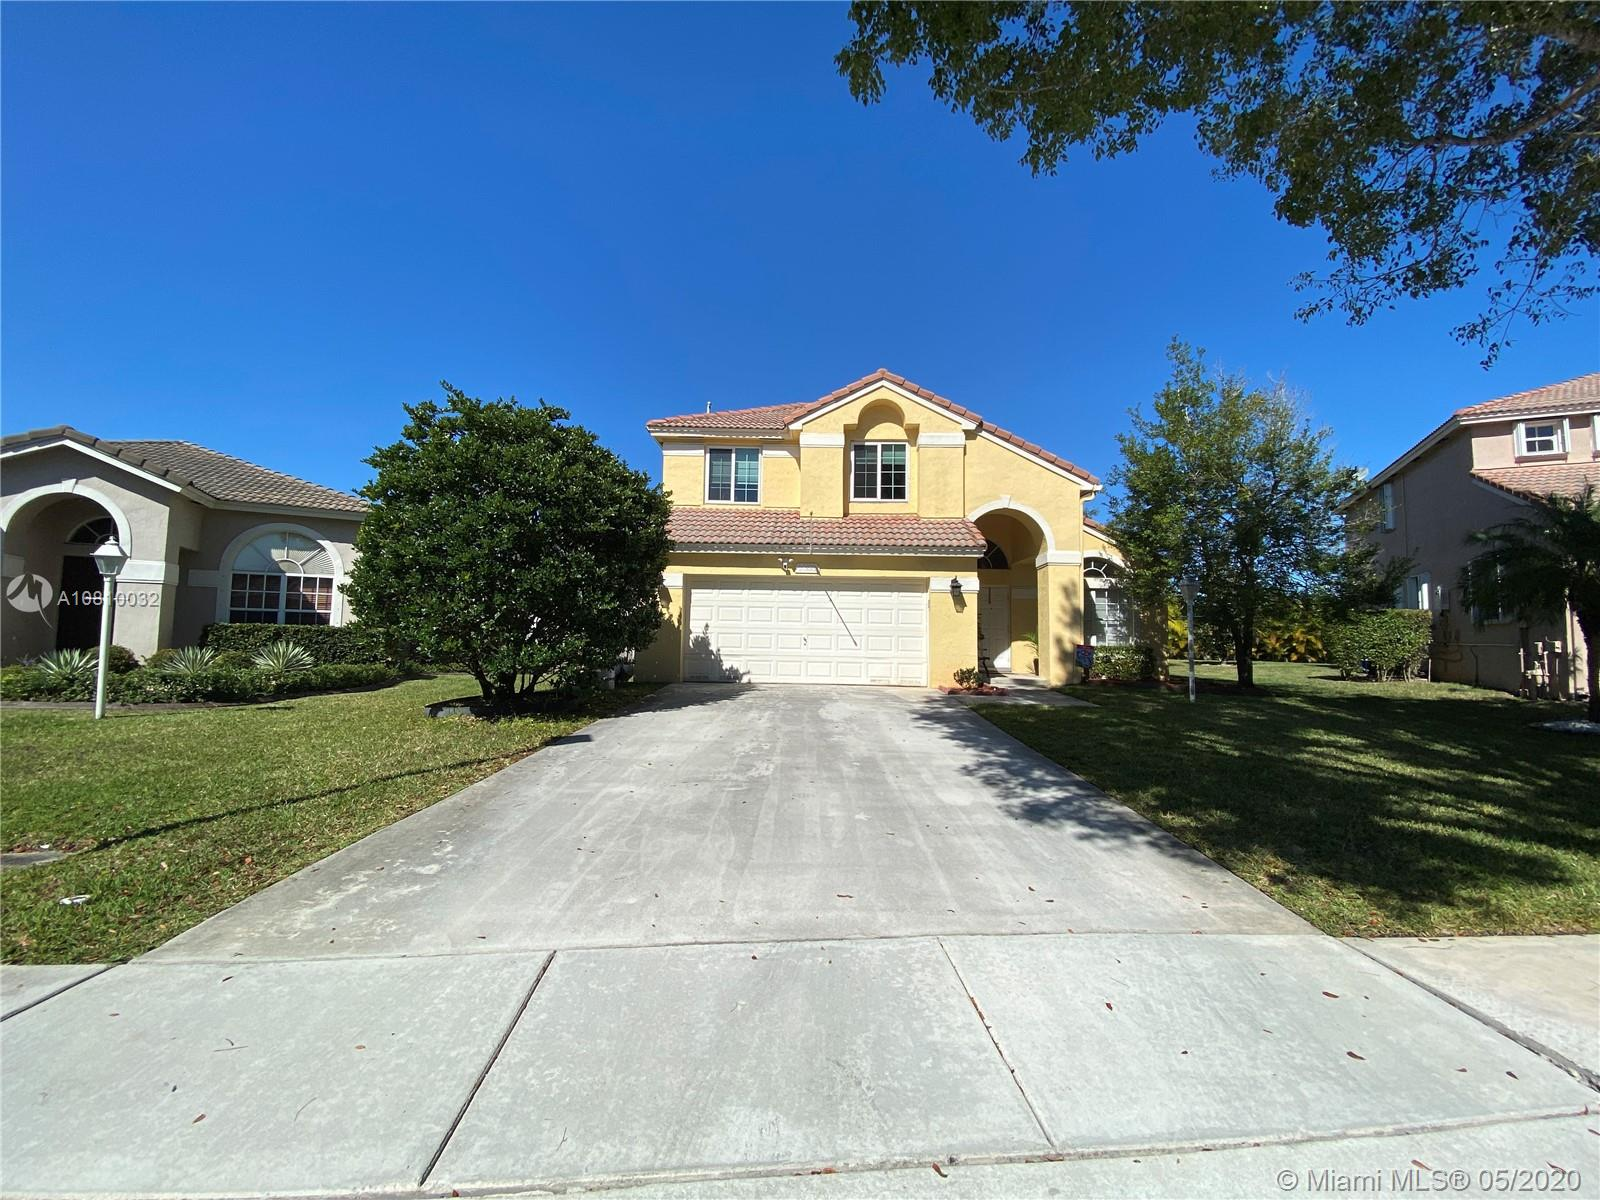 "Incredible and breathtaking must see 4 hab / 2.5 bath Single Family home, in desirable "" Pembroke Falls "" gated community, Surrounded by top rated schools, shopping Centers and park. Amazing oversize backyard for any ocasion, beautiful remodeled pool with the new salt system, Impact windows in the second floor. The association Fee includes : Internet Fiber High Speed 100 mb / sec , Hotwire communication cable, HBO and more.  Seller will be willing to provide secondary financing. In person showing still accepted"